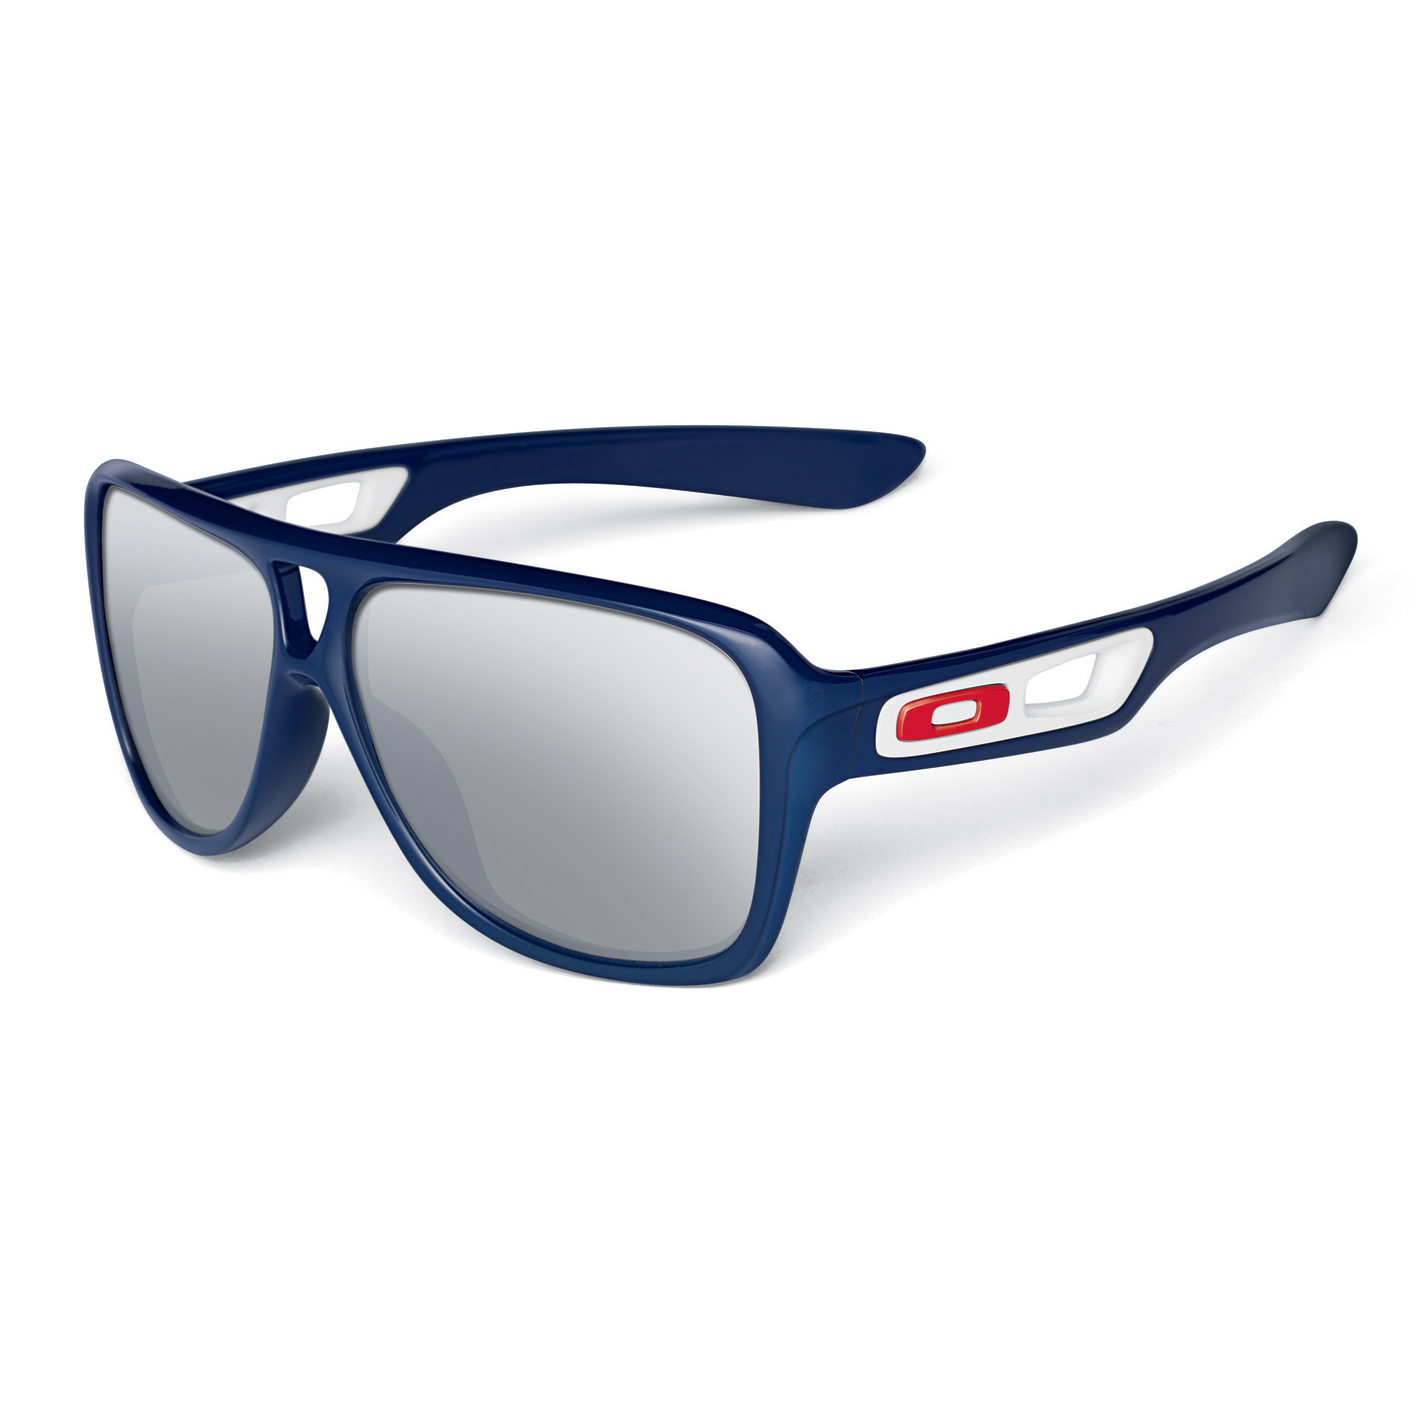 Oakley Dispatch 2 Sunglasses Navy